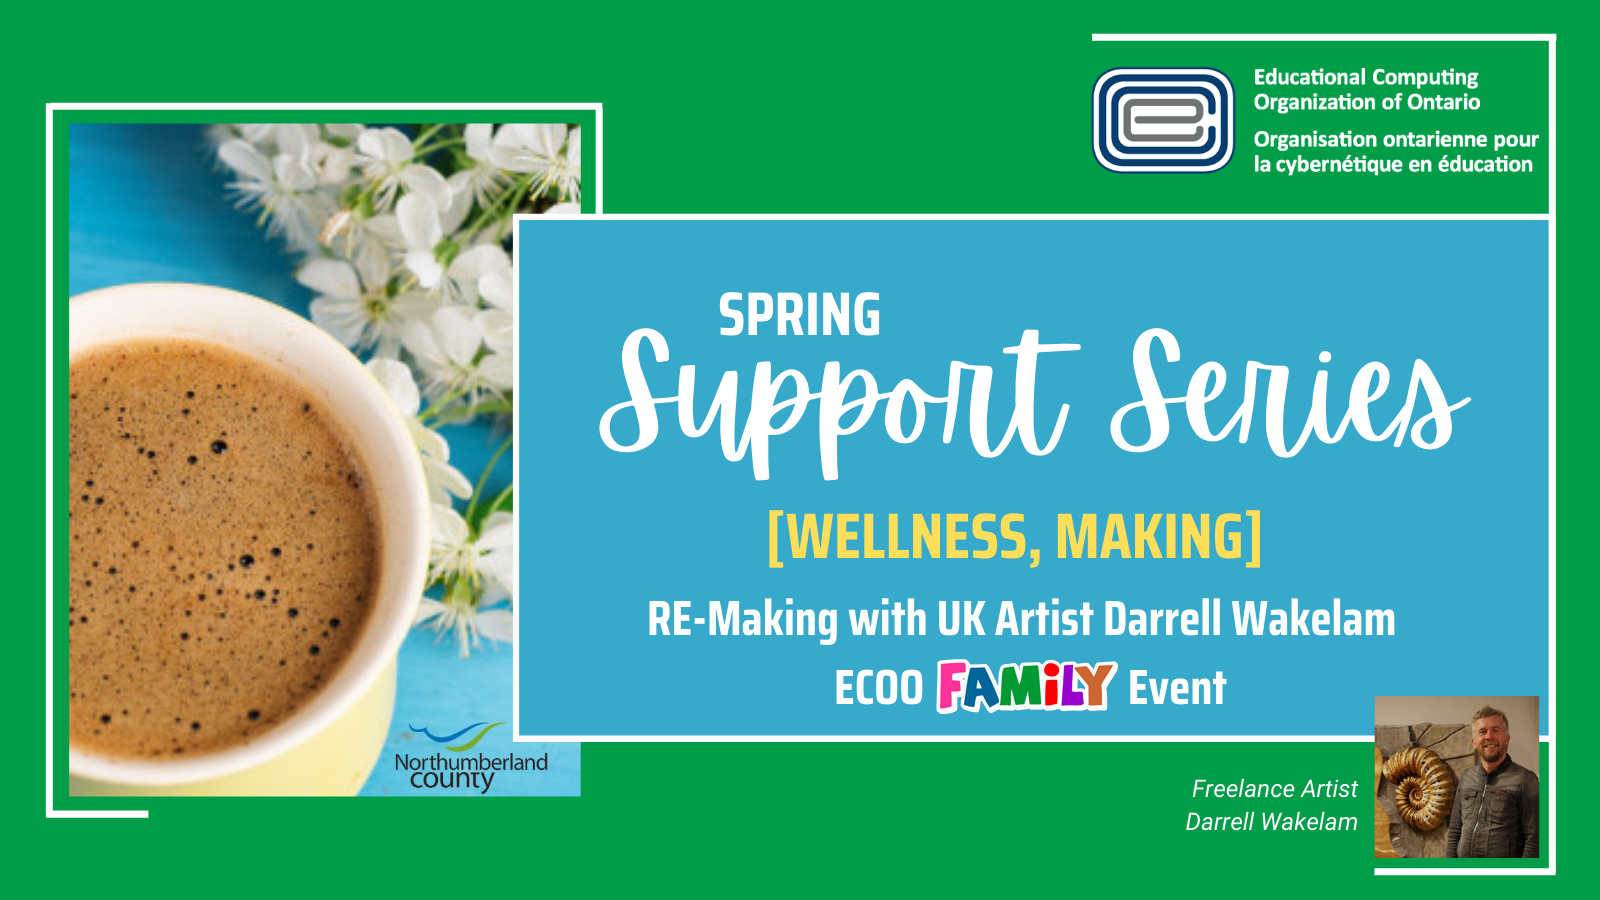 ECOO Support Series Spring Darrell Wakelam Family